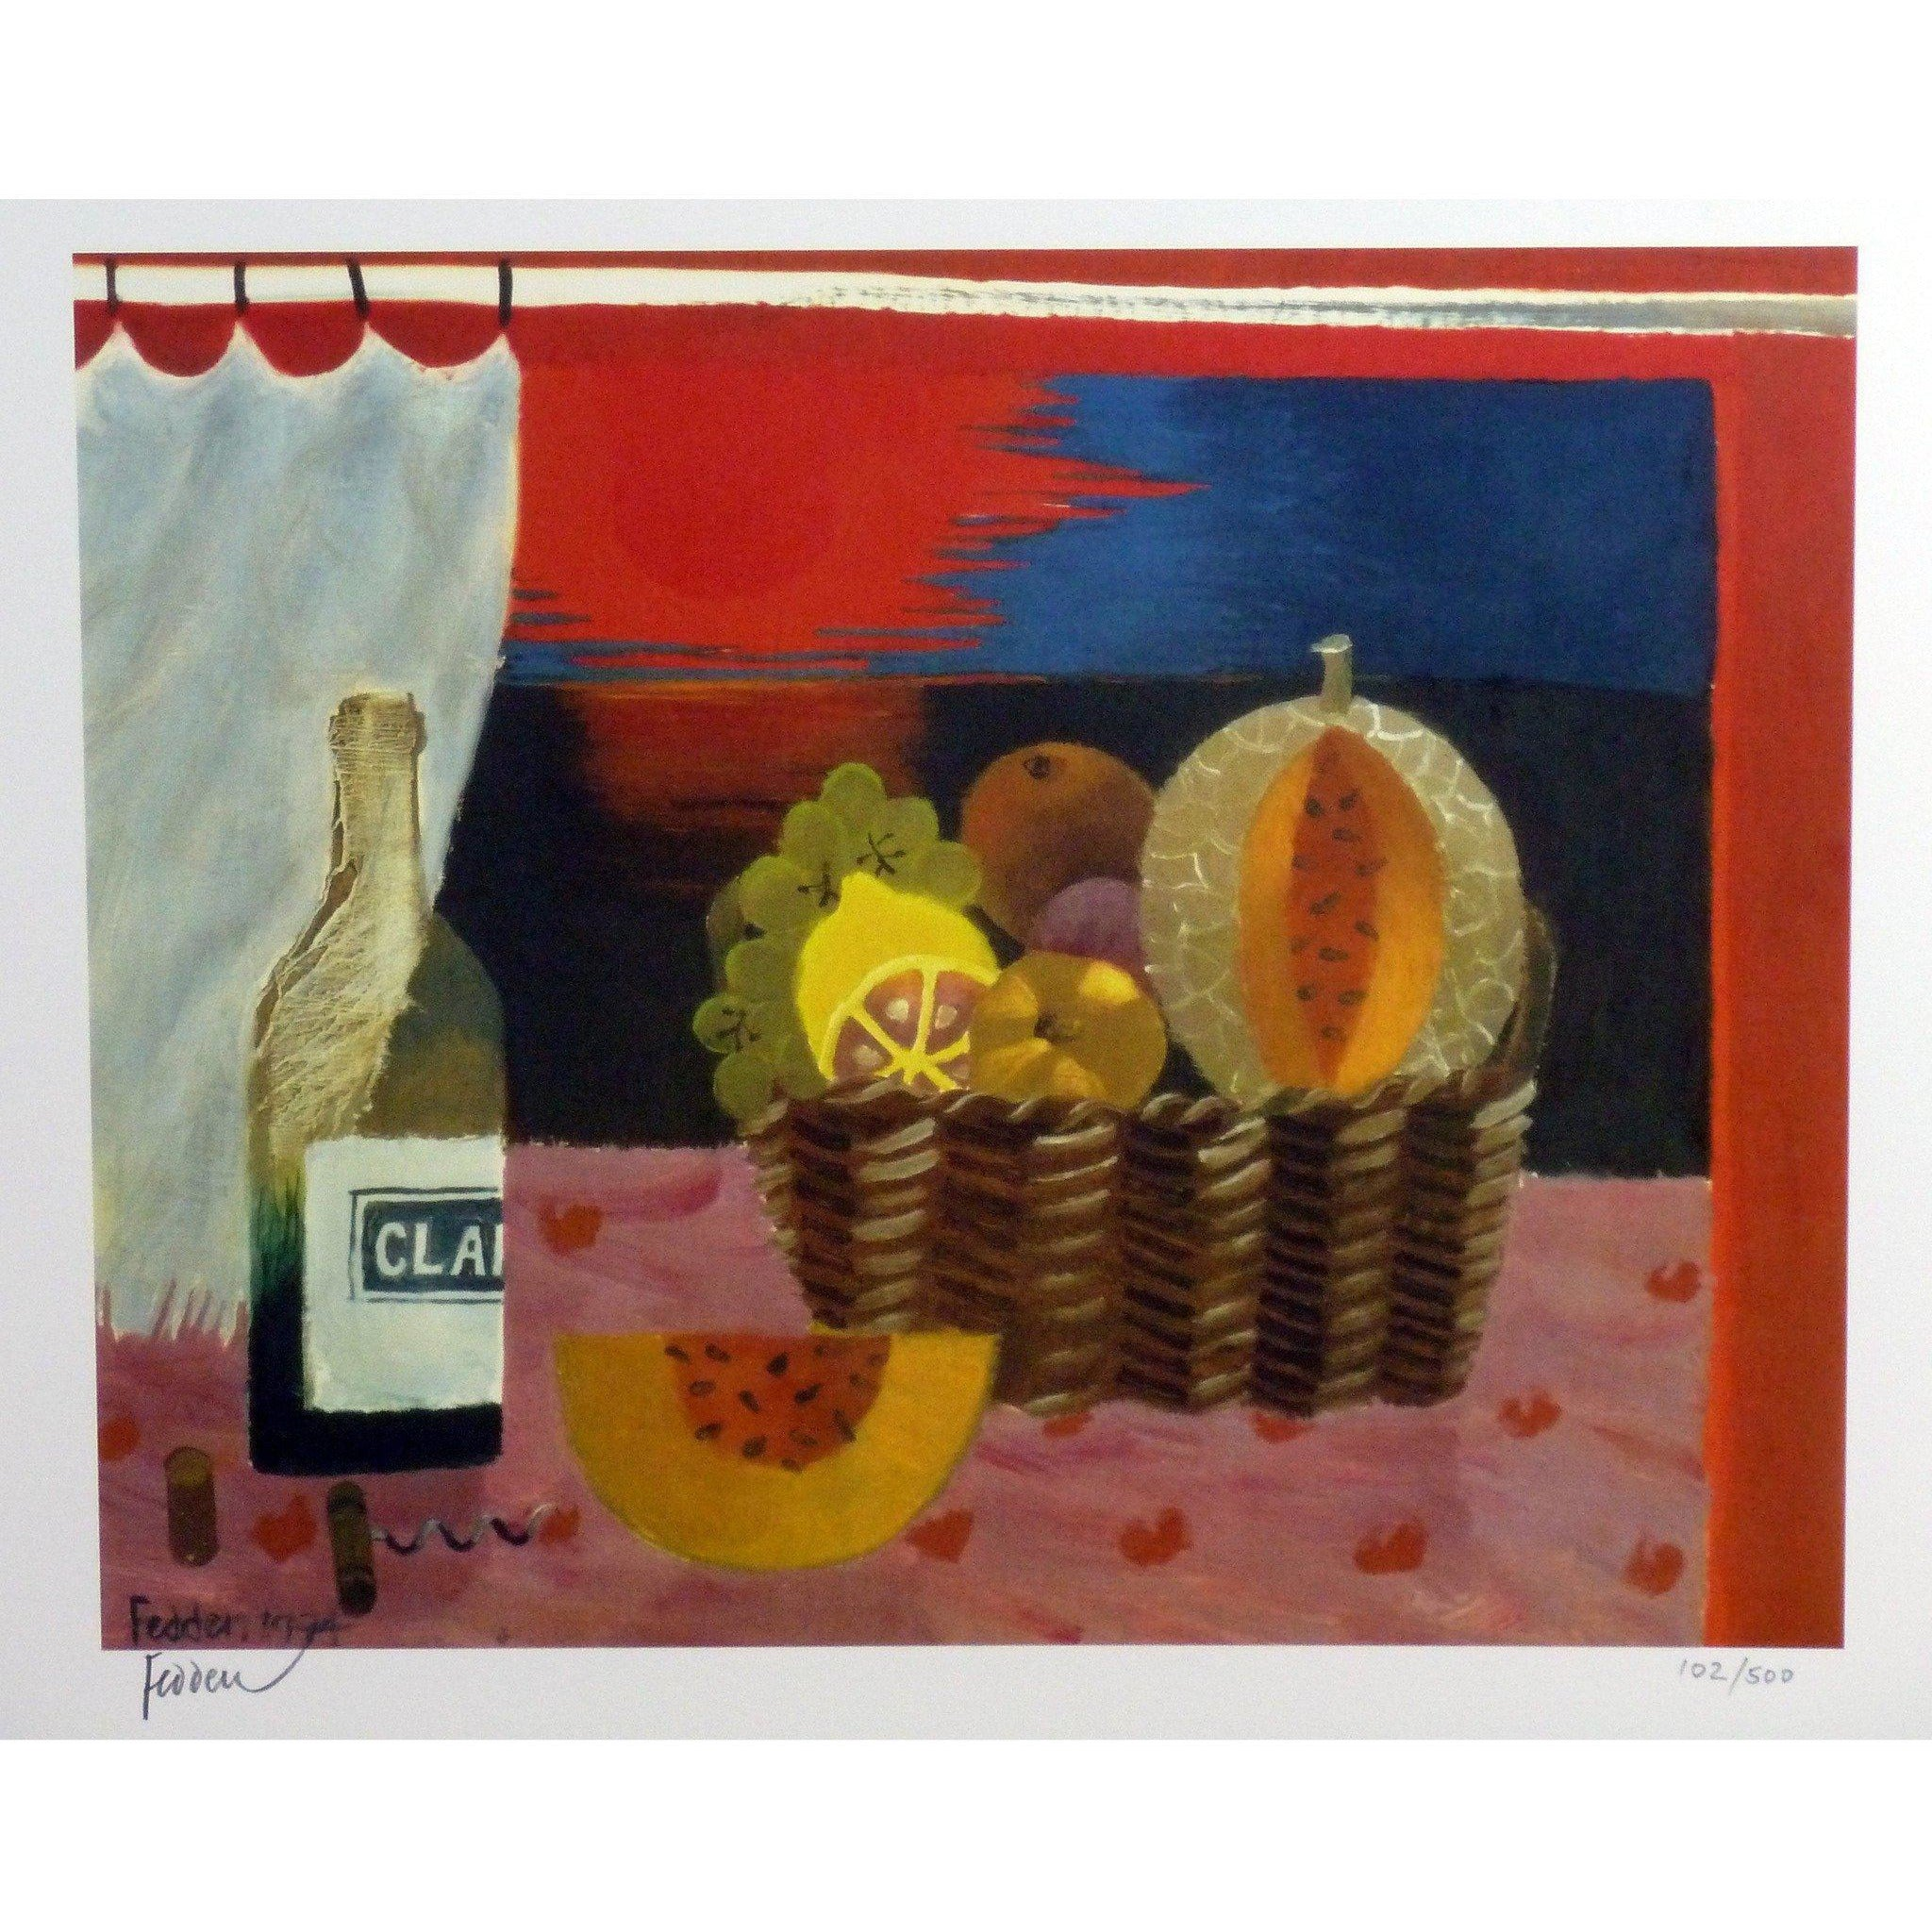 Mary Fedden Signed Ltd Ed Print - Red Sunset